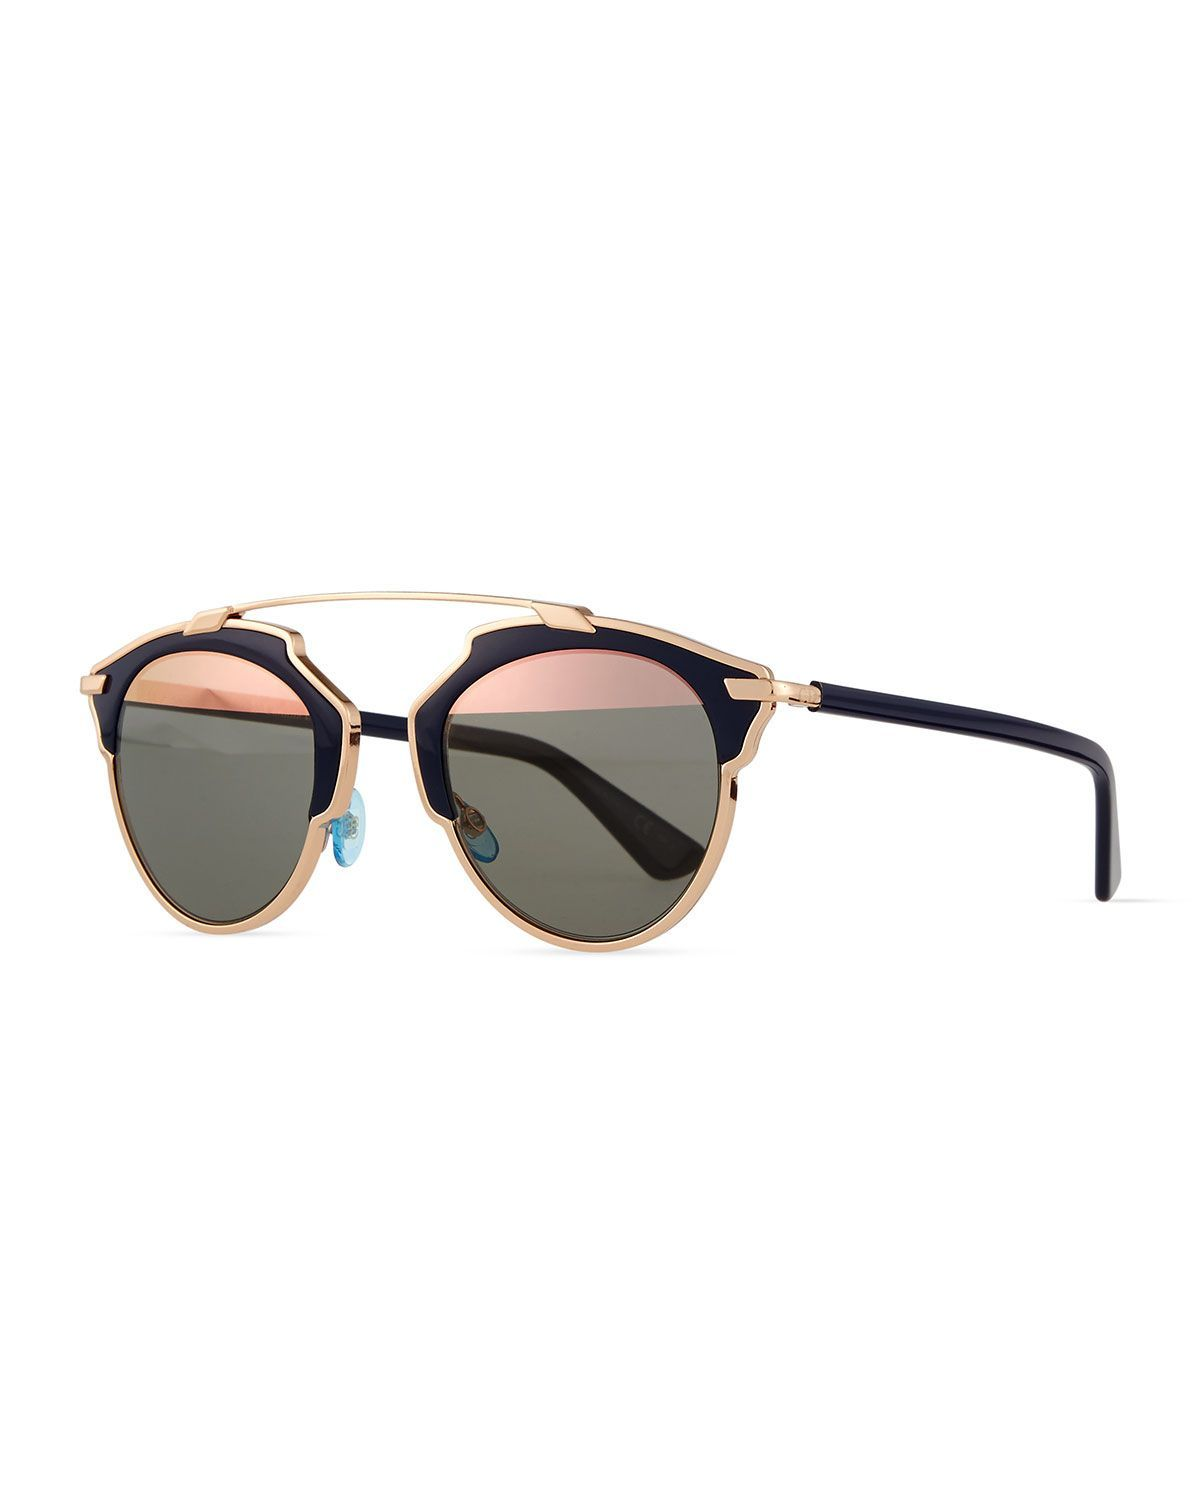 ray bans cheap real  Dior So Real Brow Bar Sunglasses